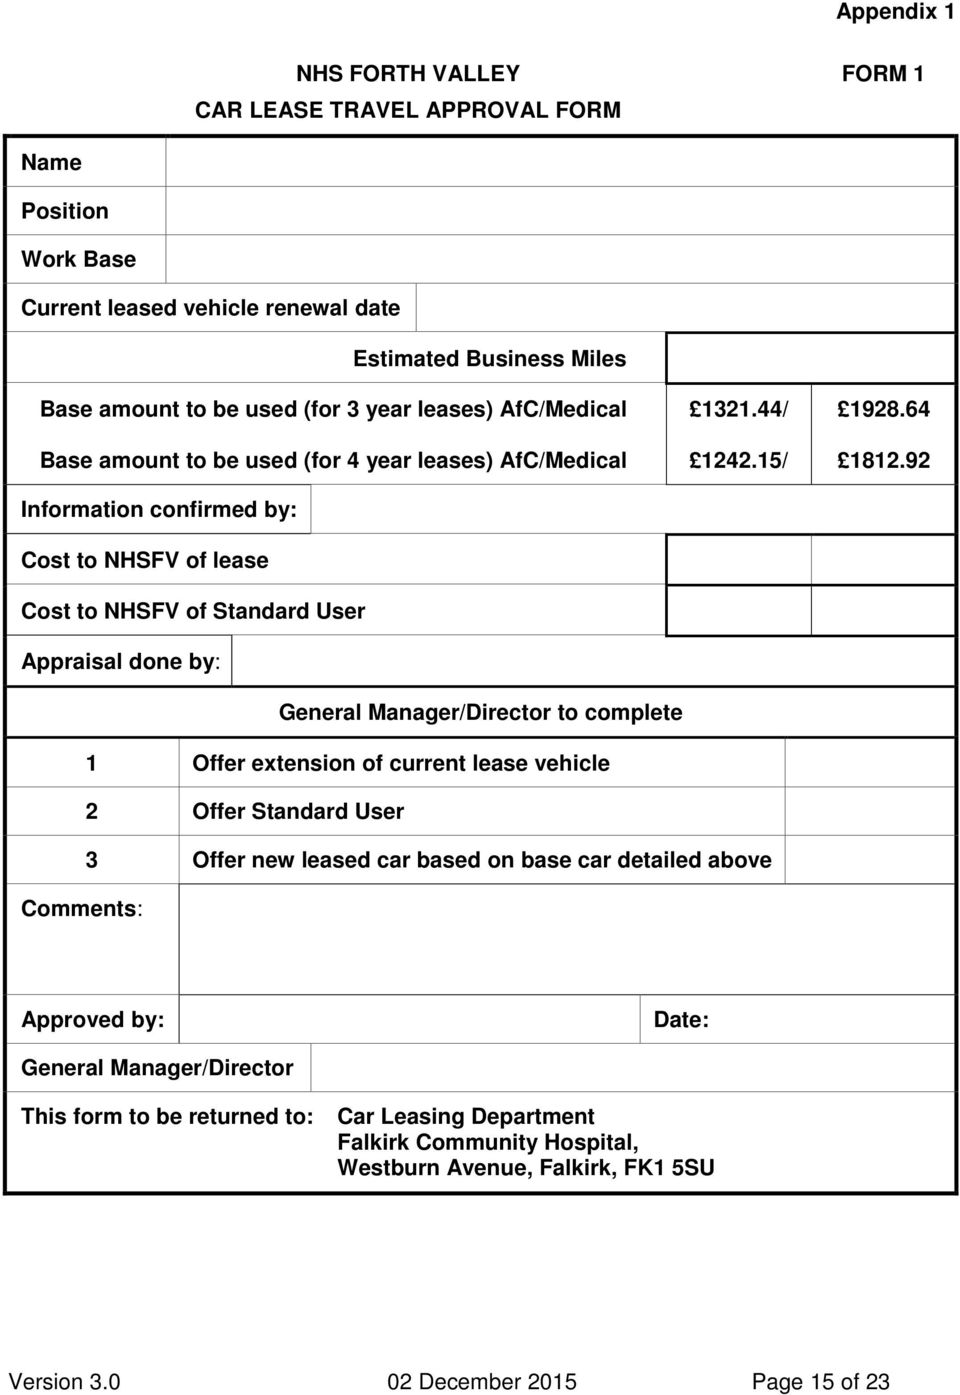 Manager/Director to complete 1 Offer extension of current lease vehicle 2 Offer Standard User 1321.44/ 1242.15/ 1928.64 1812.